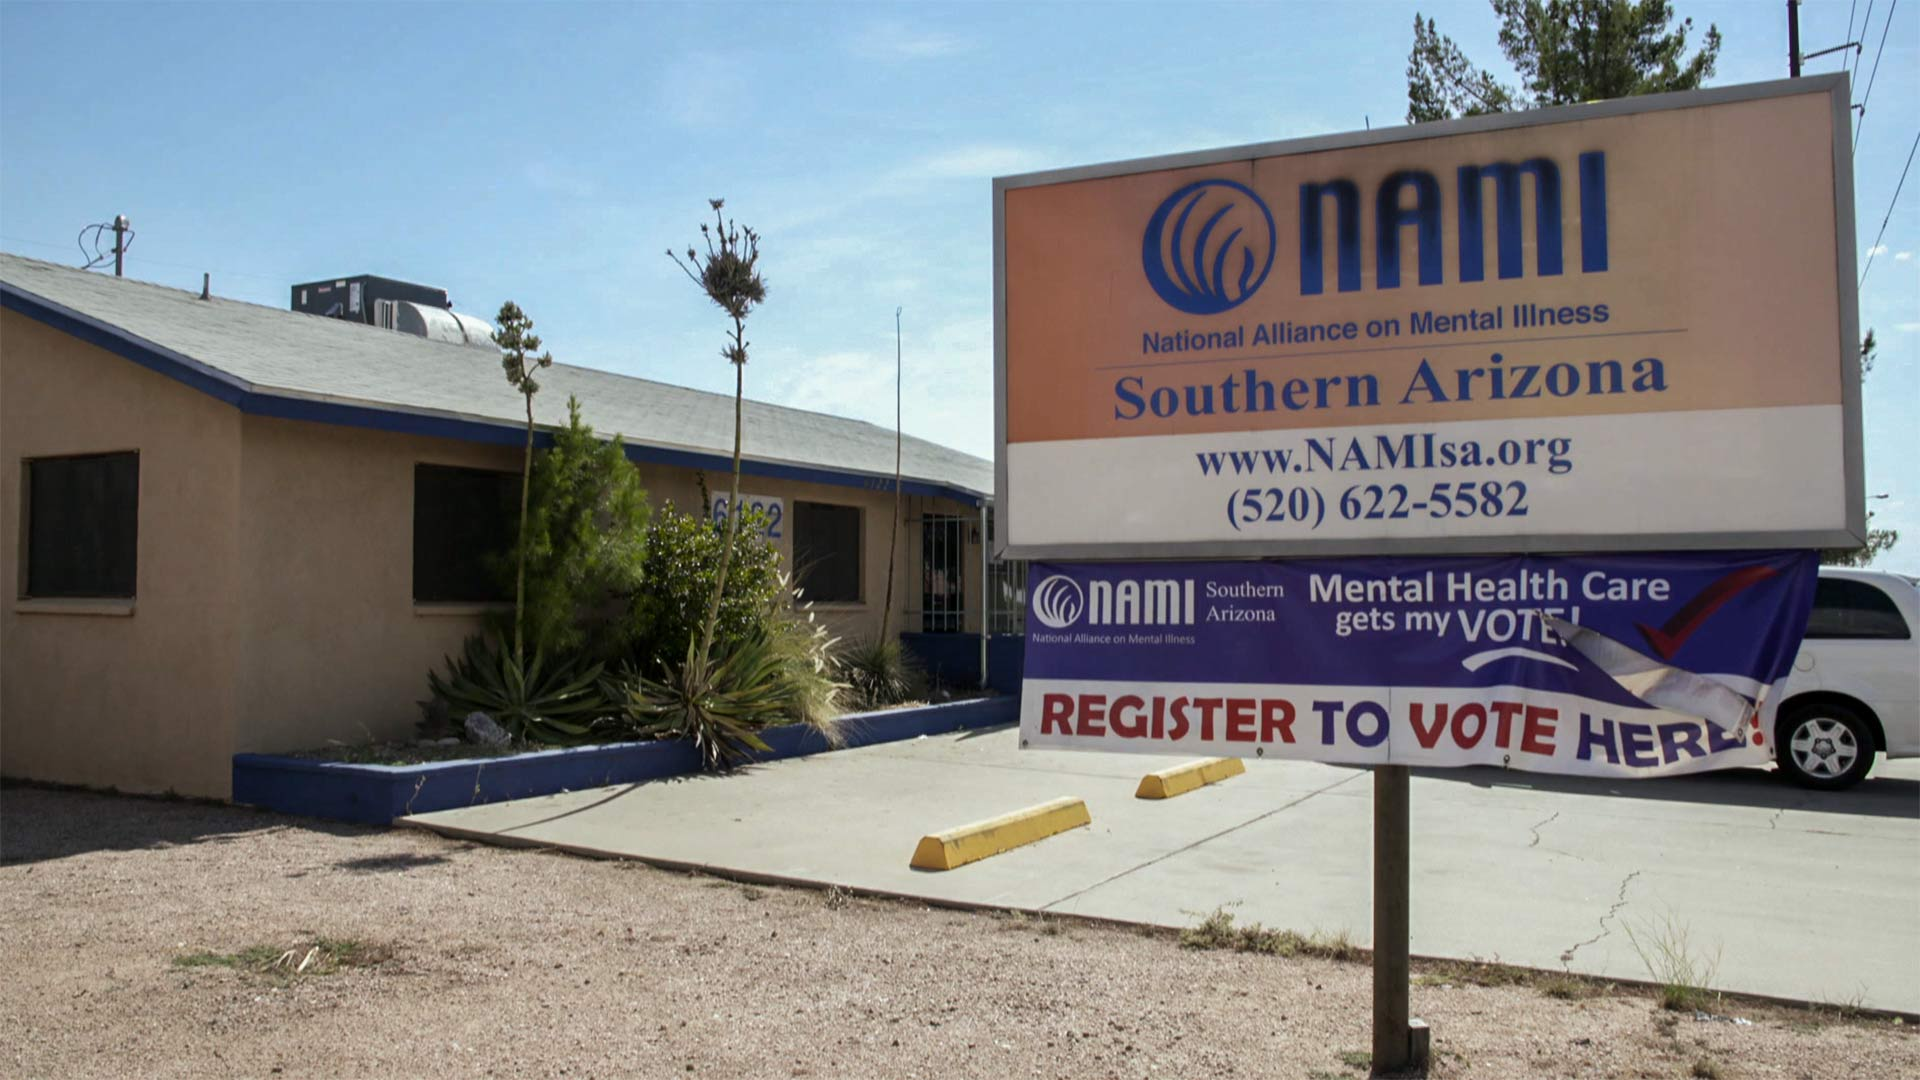 The Southern Arizona chapter of the National Alliance on Mental Health (NAMI).